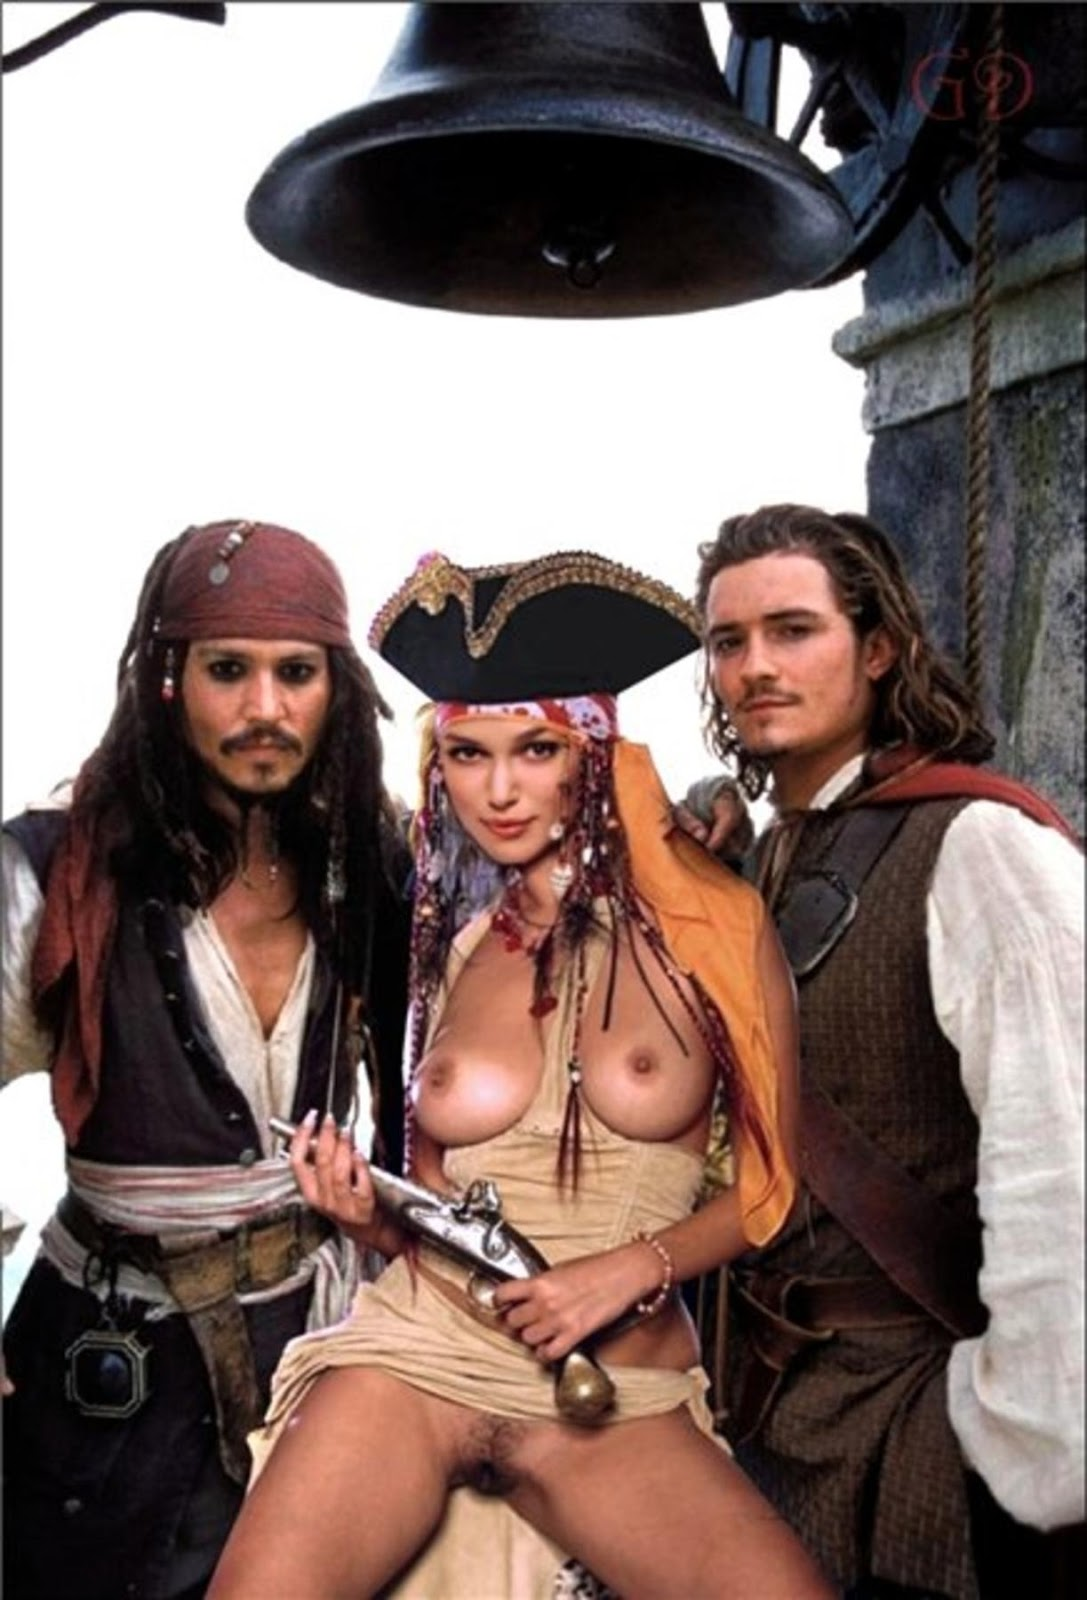 Download film sex pirates of the caribbean naked download